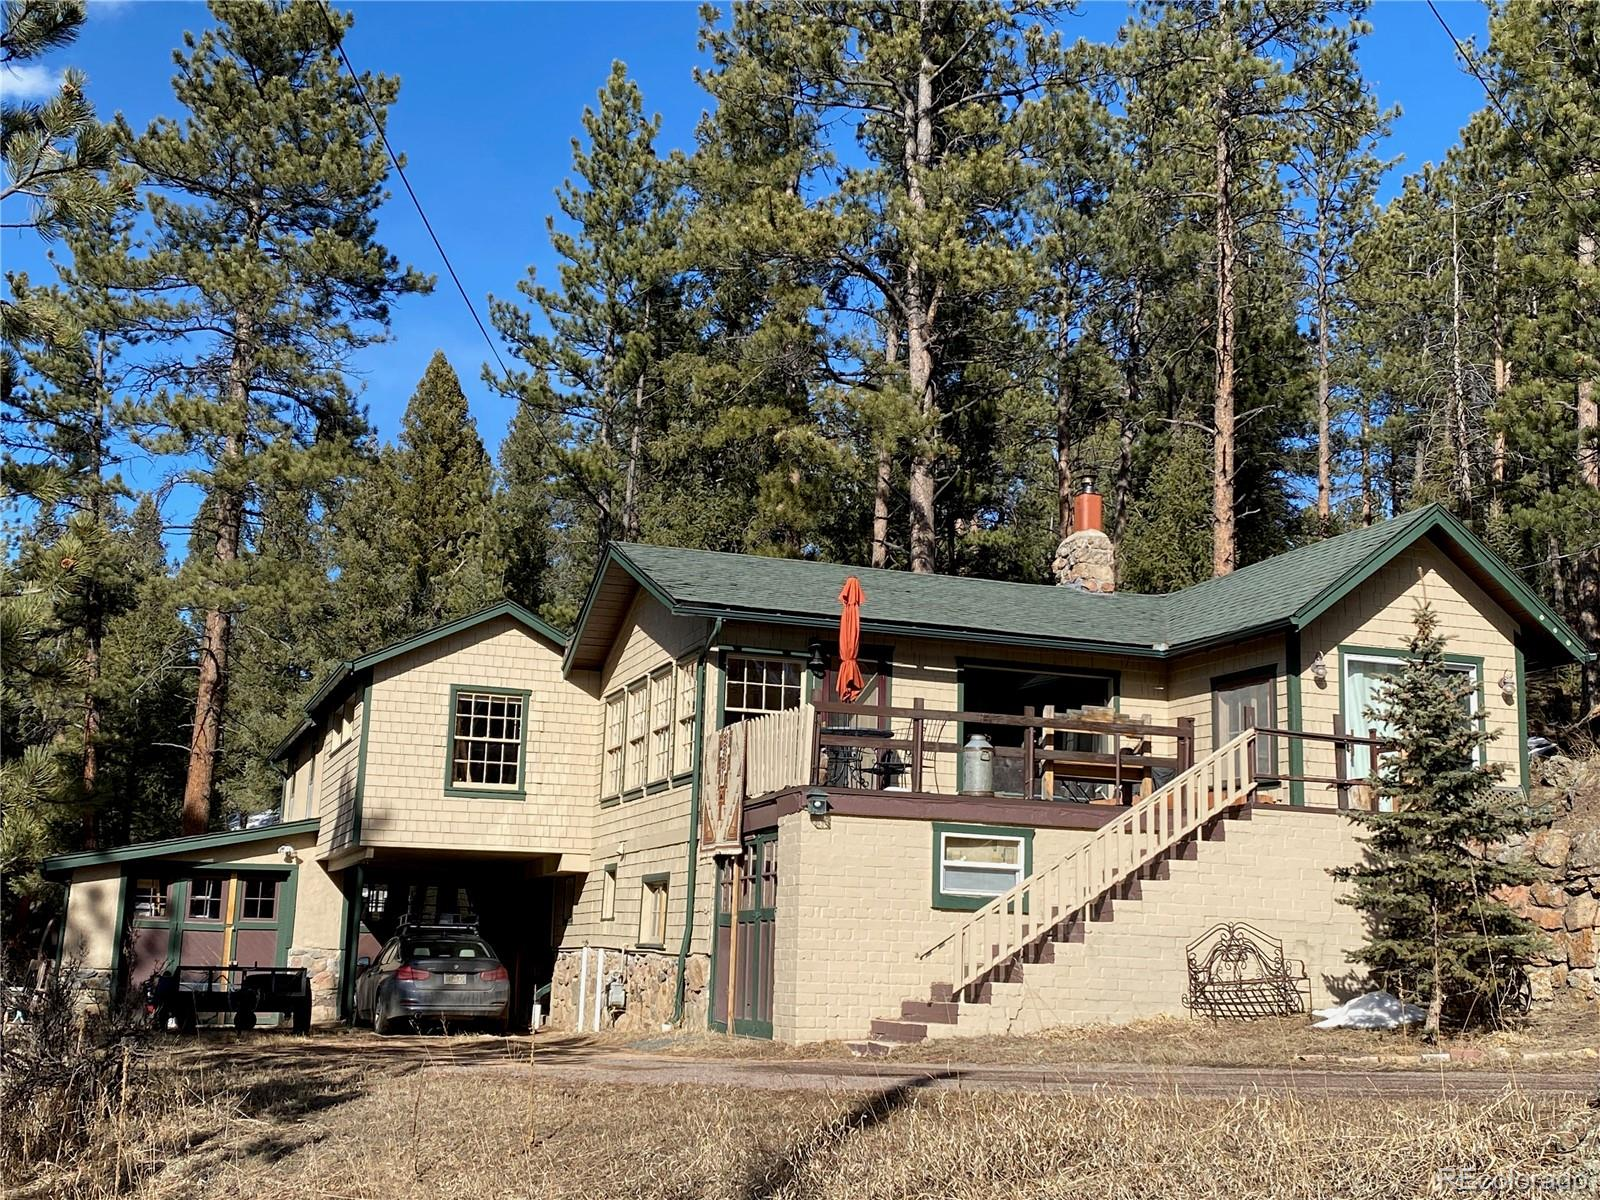 5320 S Cubmont Drive, Evergreen, CO 80439 - Evergreen, CO real estate listing